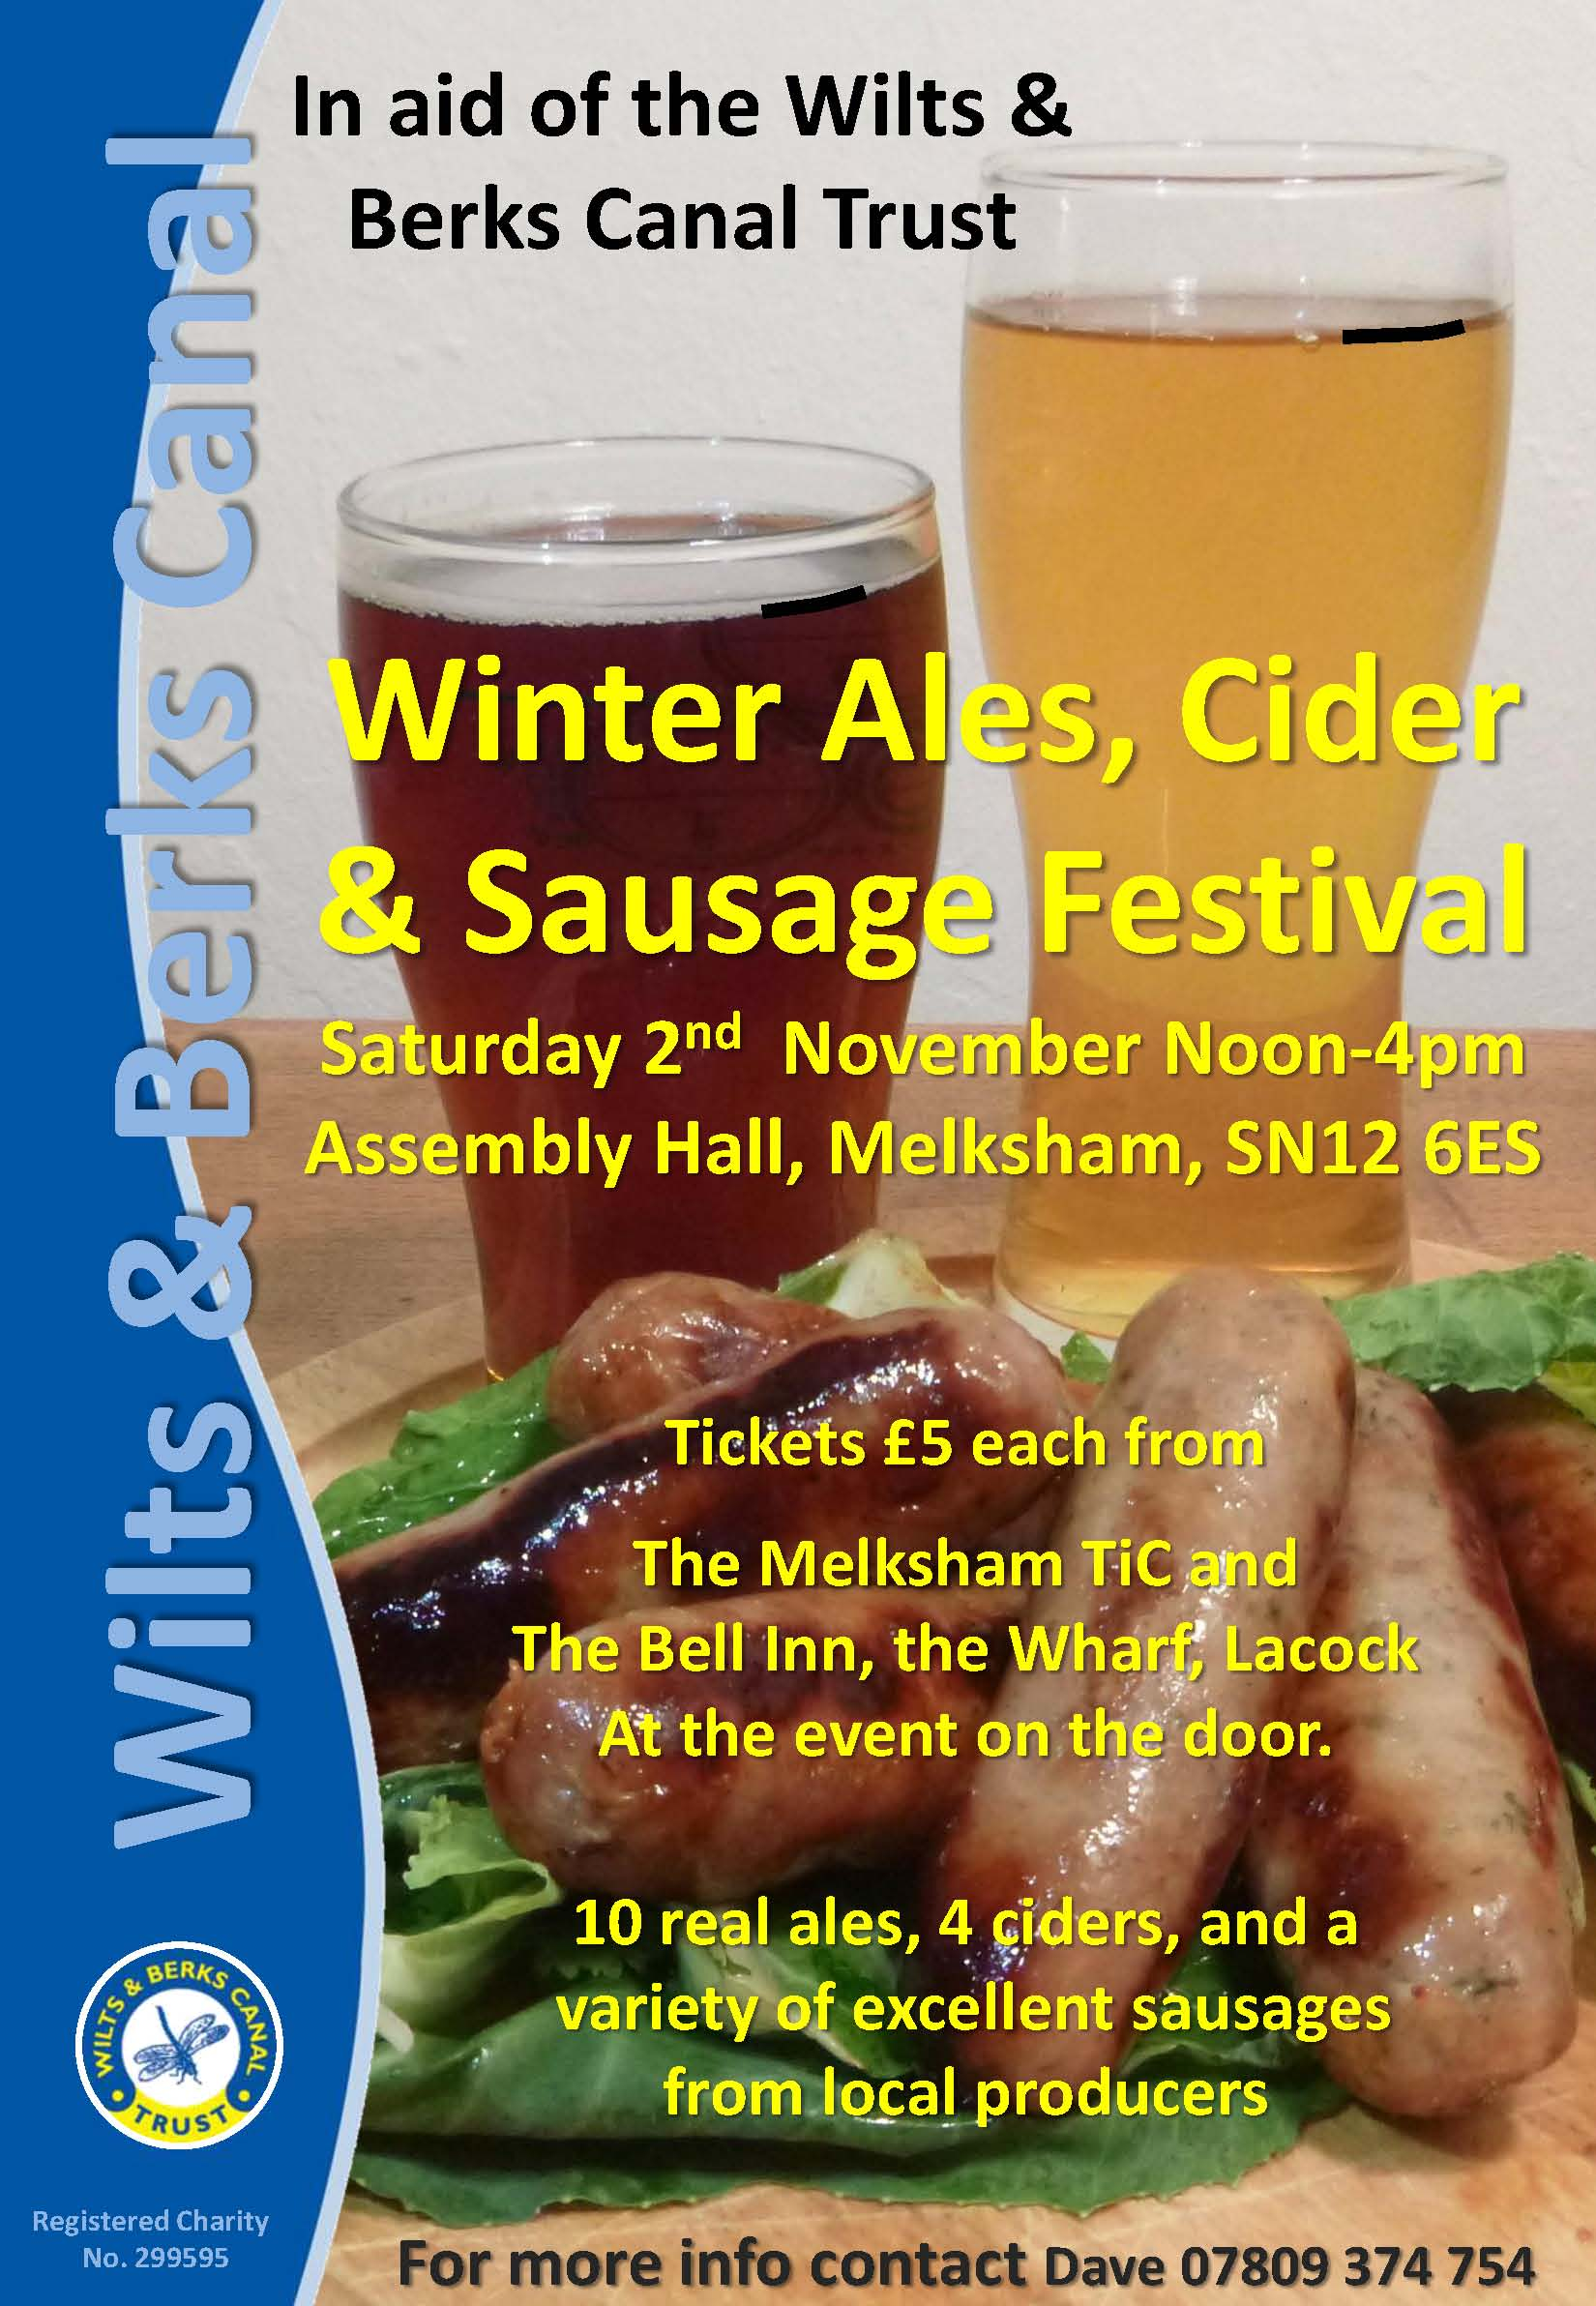 Wilts & Berks Canal Trust Winter Ales, Cider & Sausage Festival